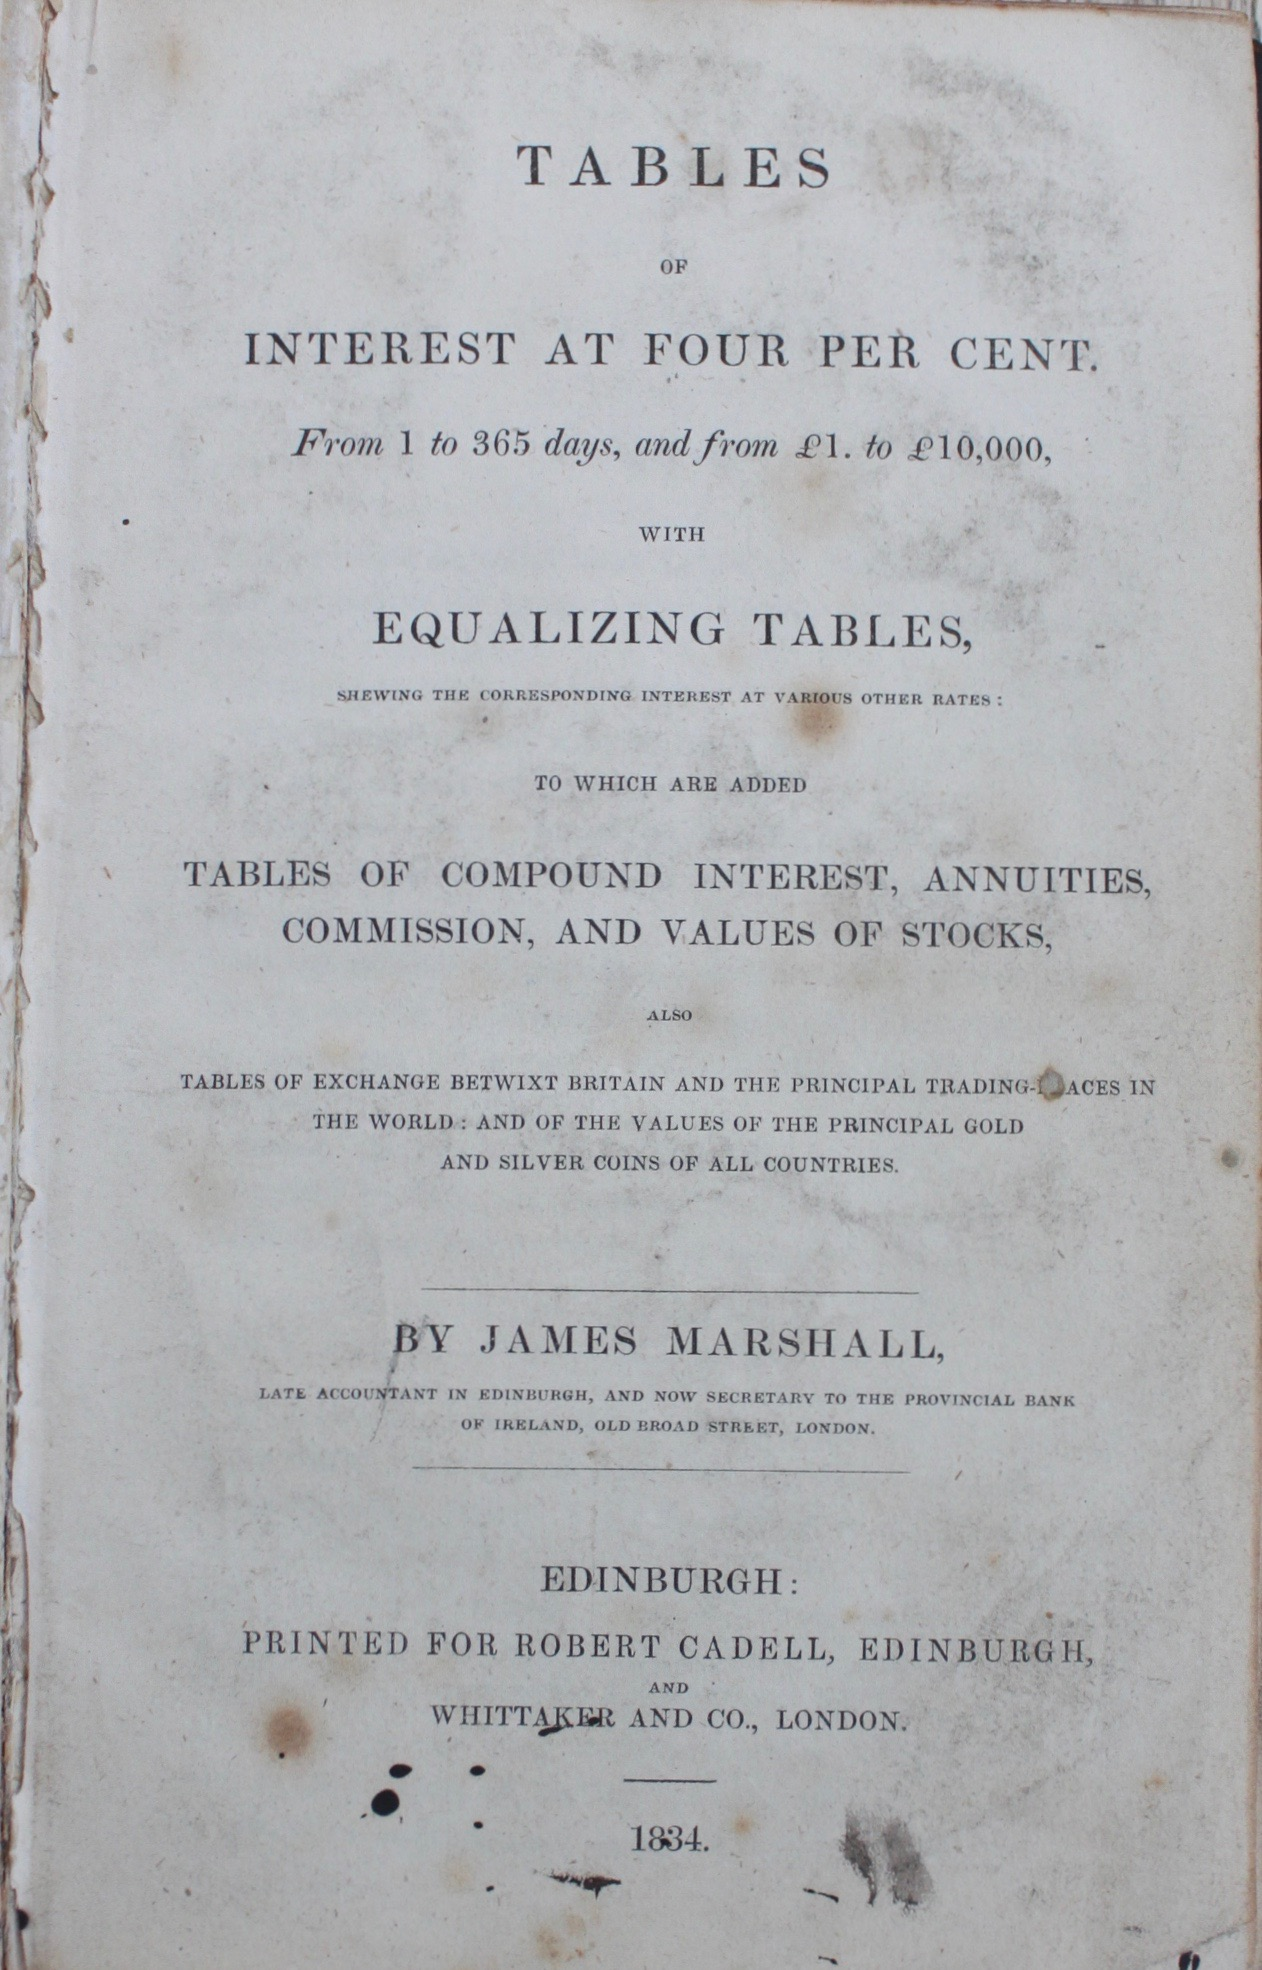 Image for Tables of Interest at Four Per Cent from 1 to 365 Days, and from £1 to £10,000, with Equalizing Tables, shewing the corresponding interest at various other rates: to which are added Tables of Compound Interest, Annuities, Commission, and Values of Stocks, also tables of exchange between Britain and the principal trading places in the world: and the values of the principal gold and silver coins of all countries.